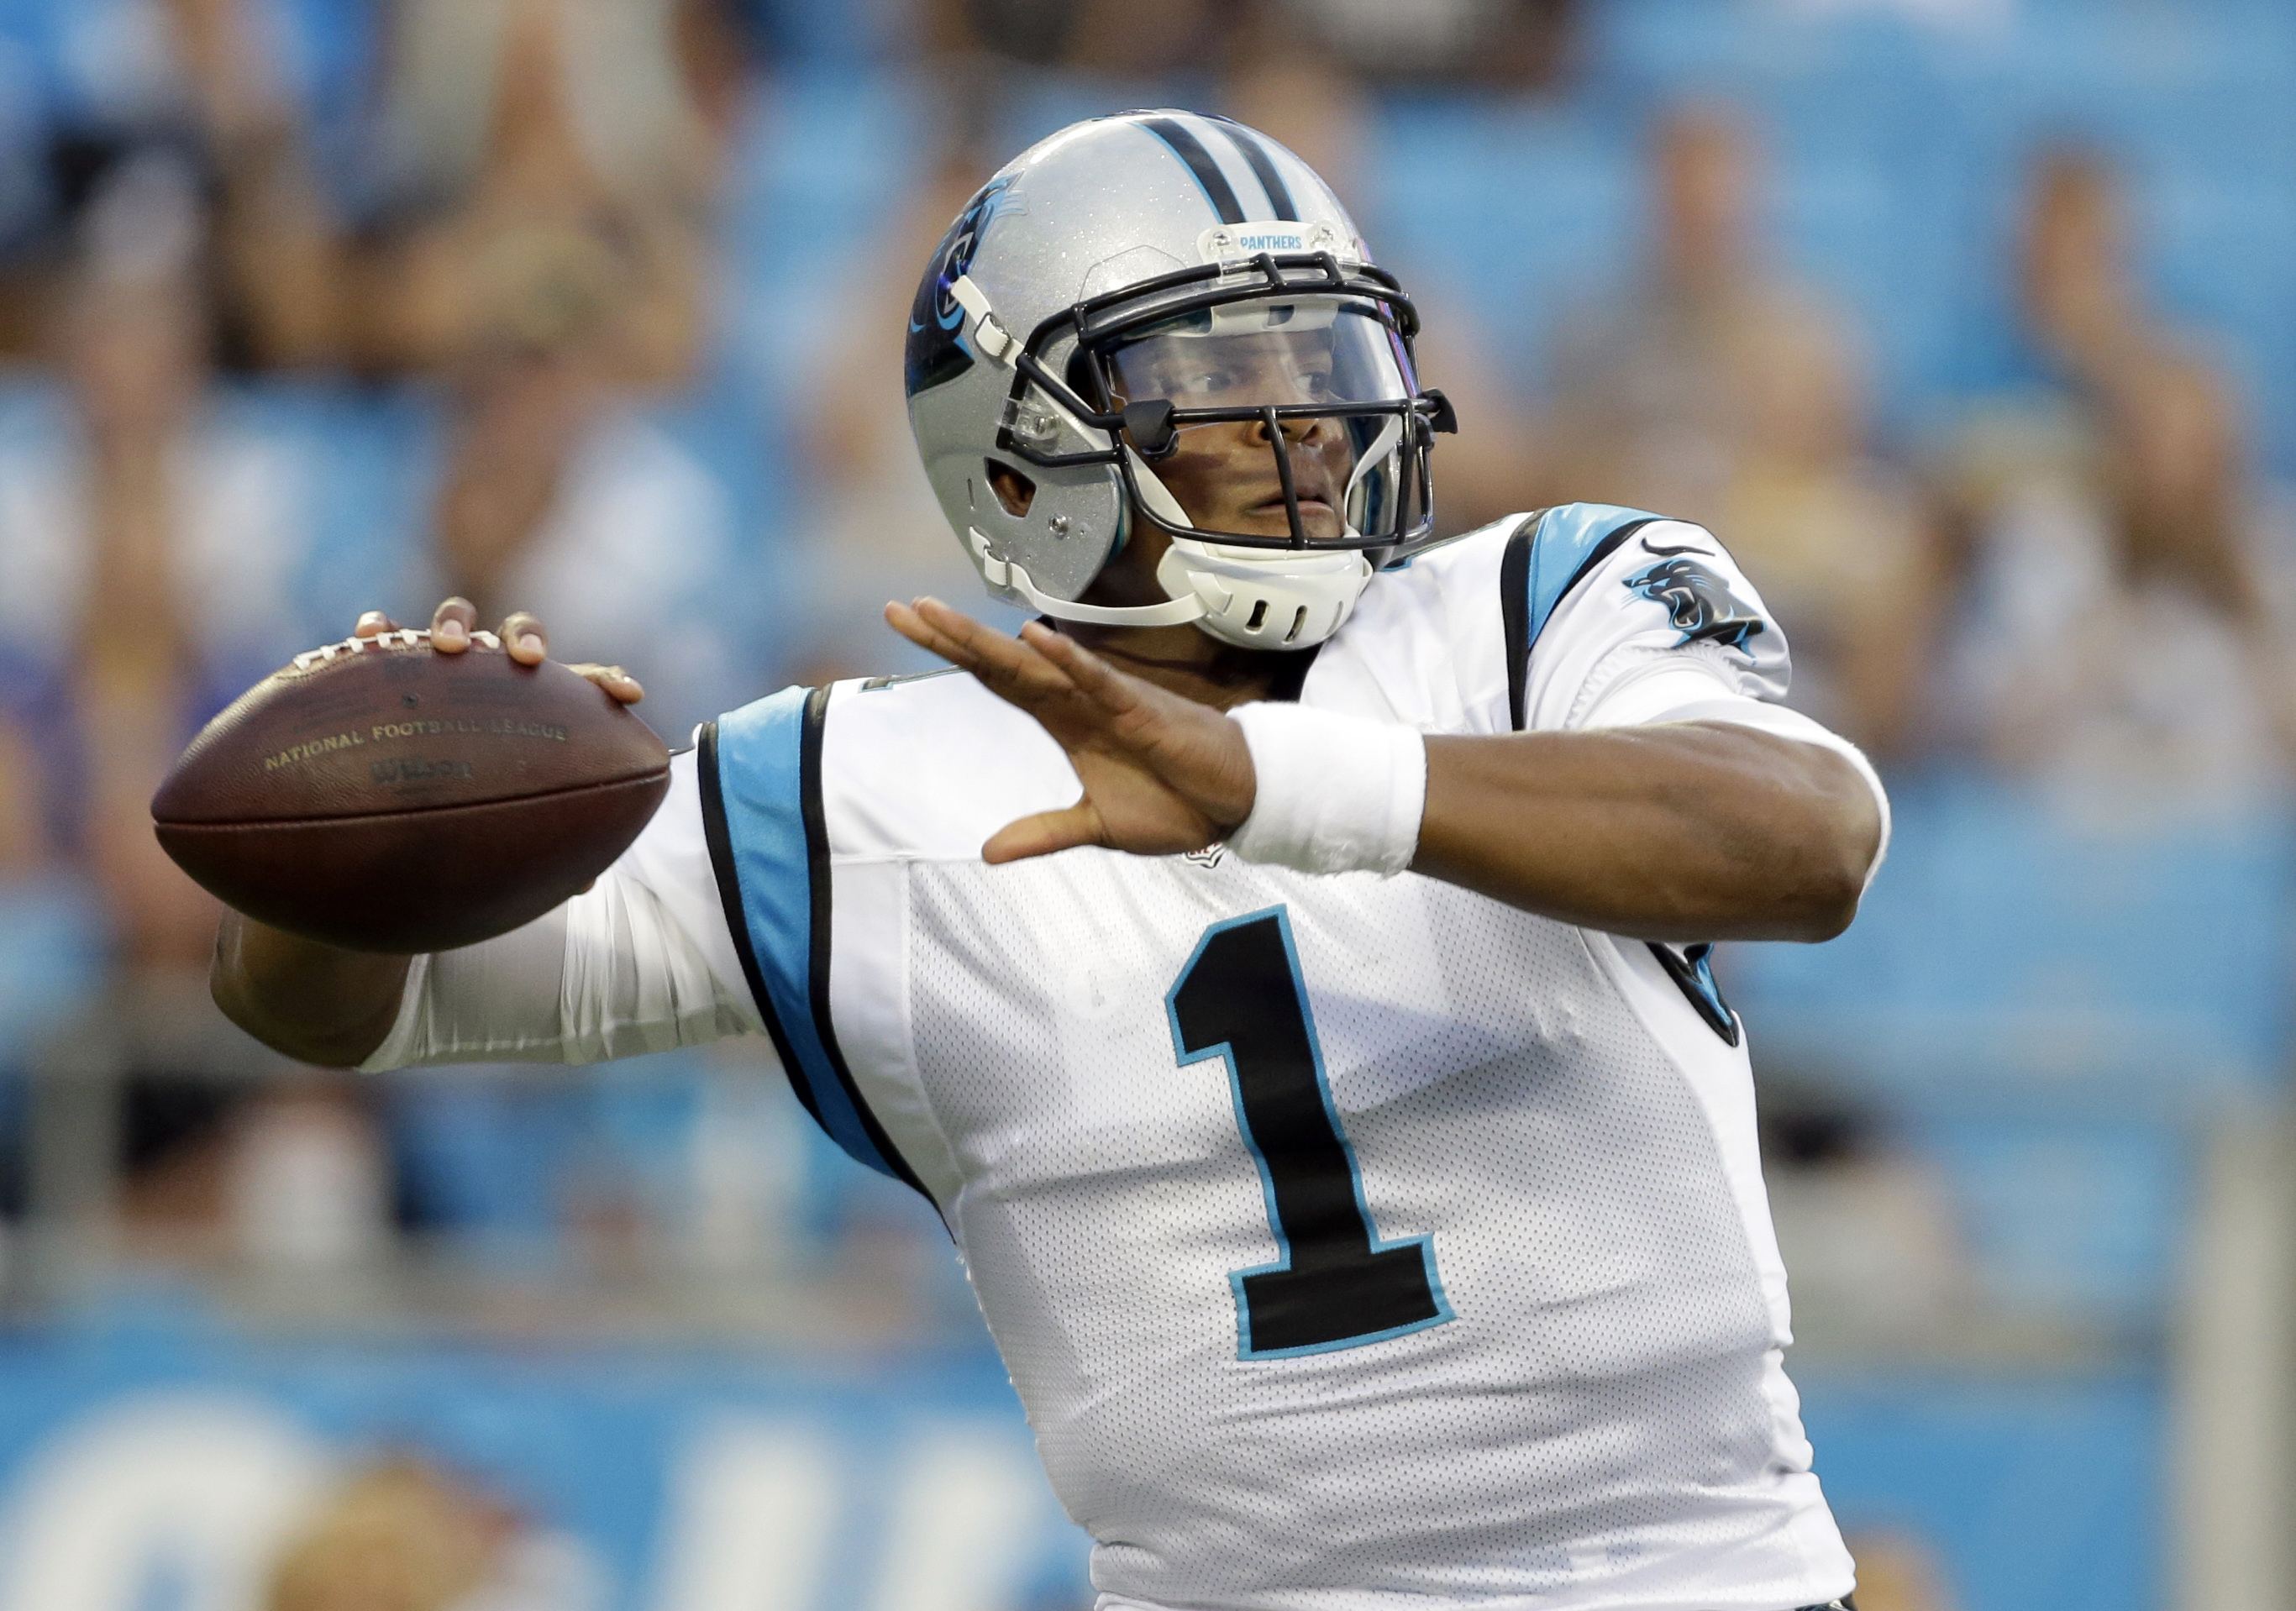 FILE - In a Friday, Aug. 26, 2016 file photo, Carolina Panthers' Cam Newton (1) looks to pass against the New England Patriots during the first half of a preseason NFL football game in Charlotte, N.C.. The last four teams to play for the NFC championship